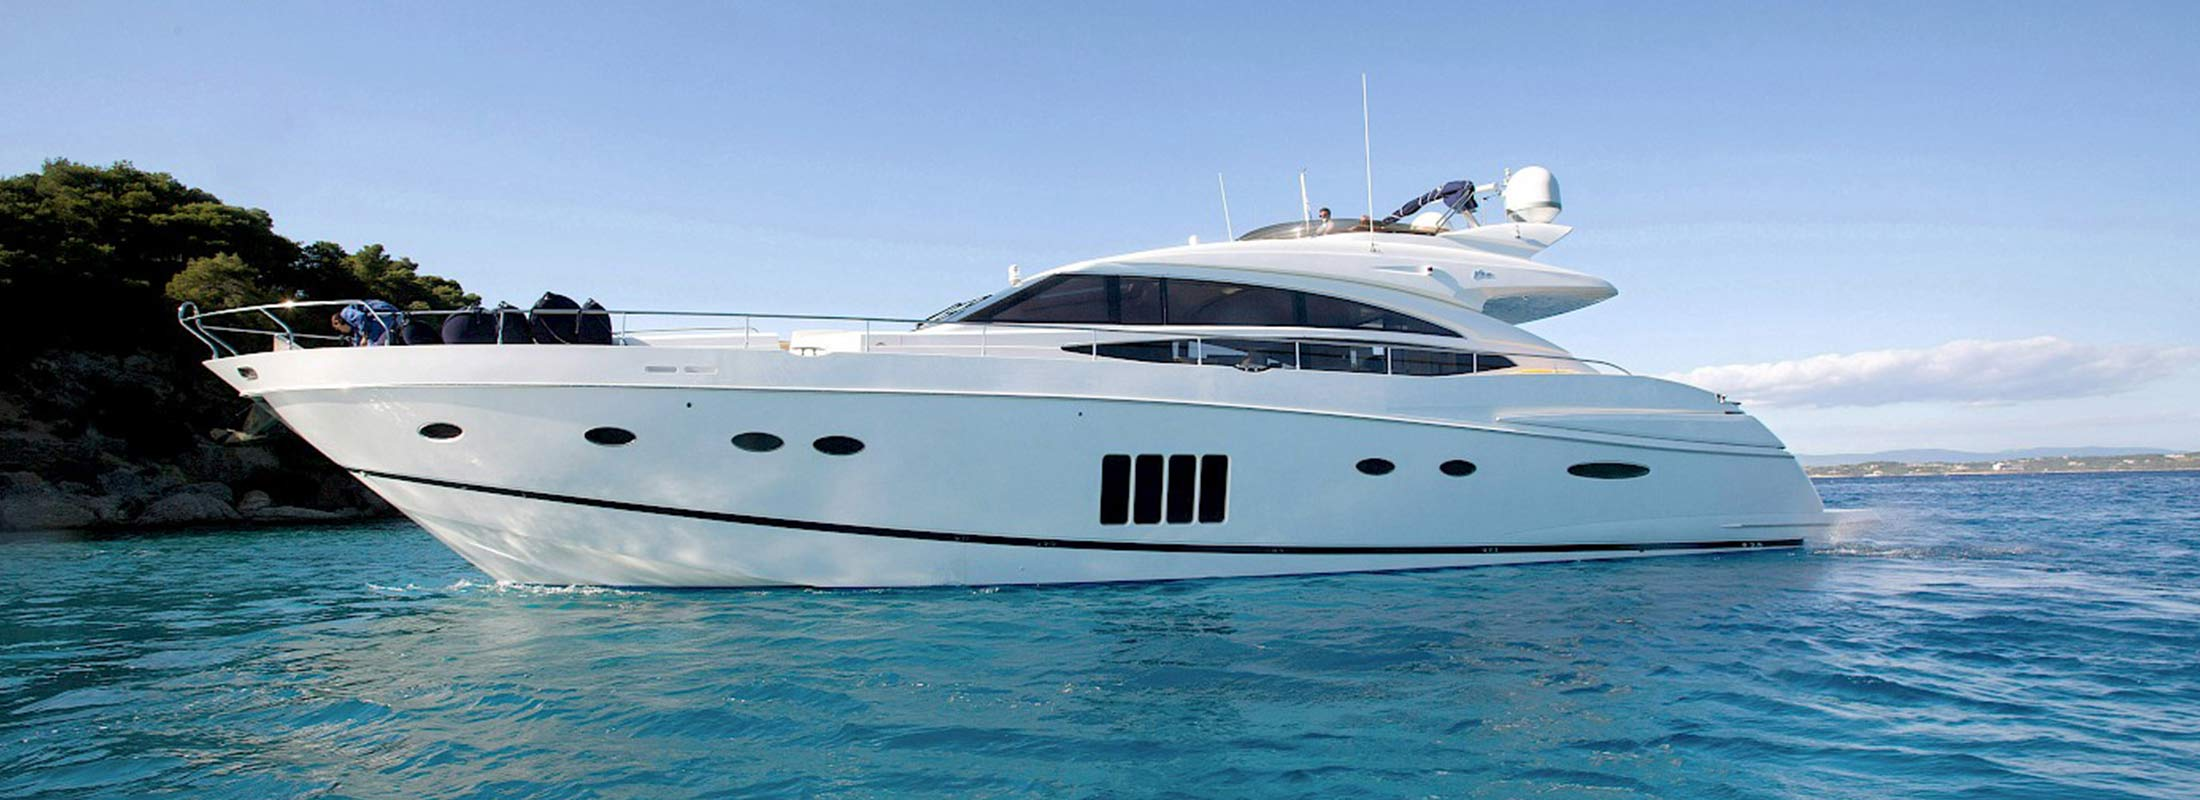 Catherine Yacht Charter Details | Abberley Luxury Yachts